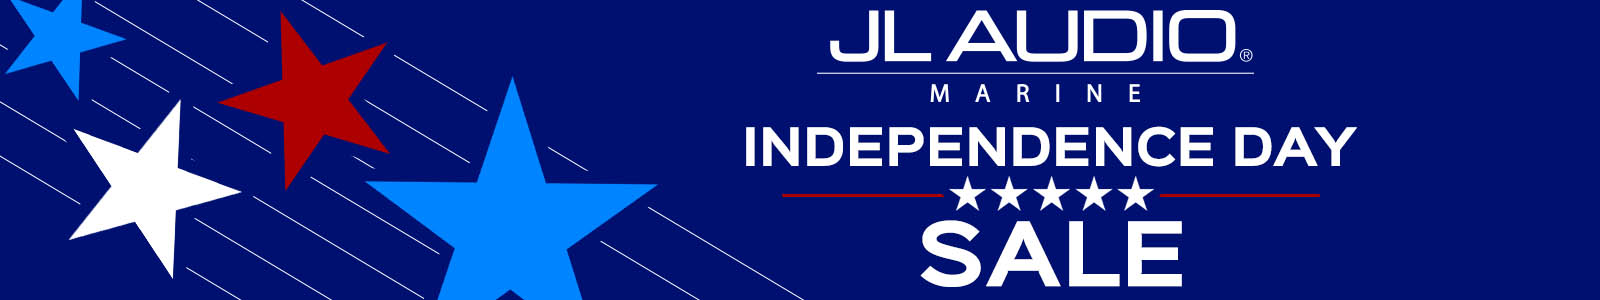 JL Audio Independence Day Closeout Sale!